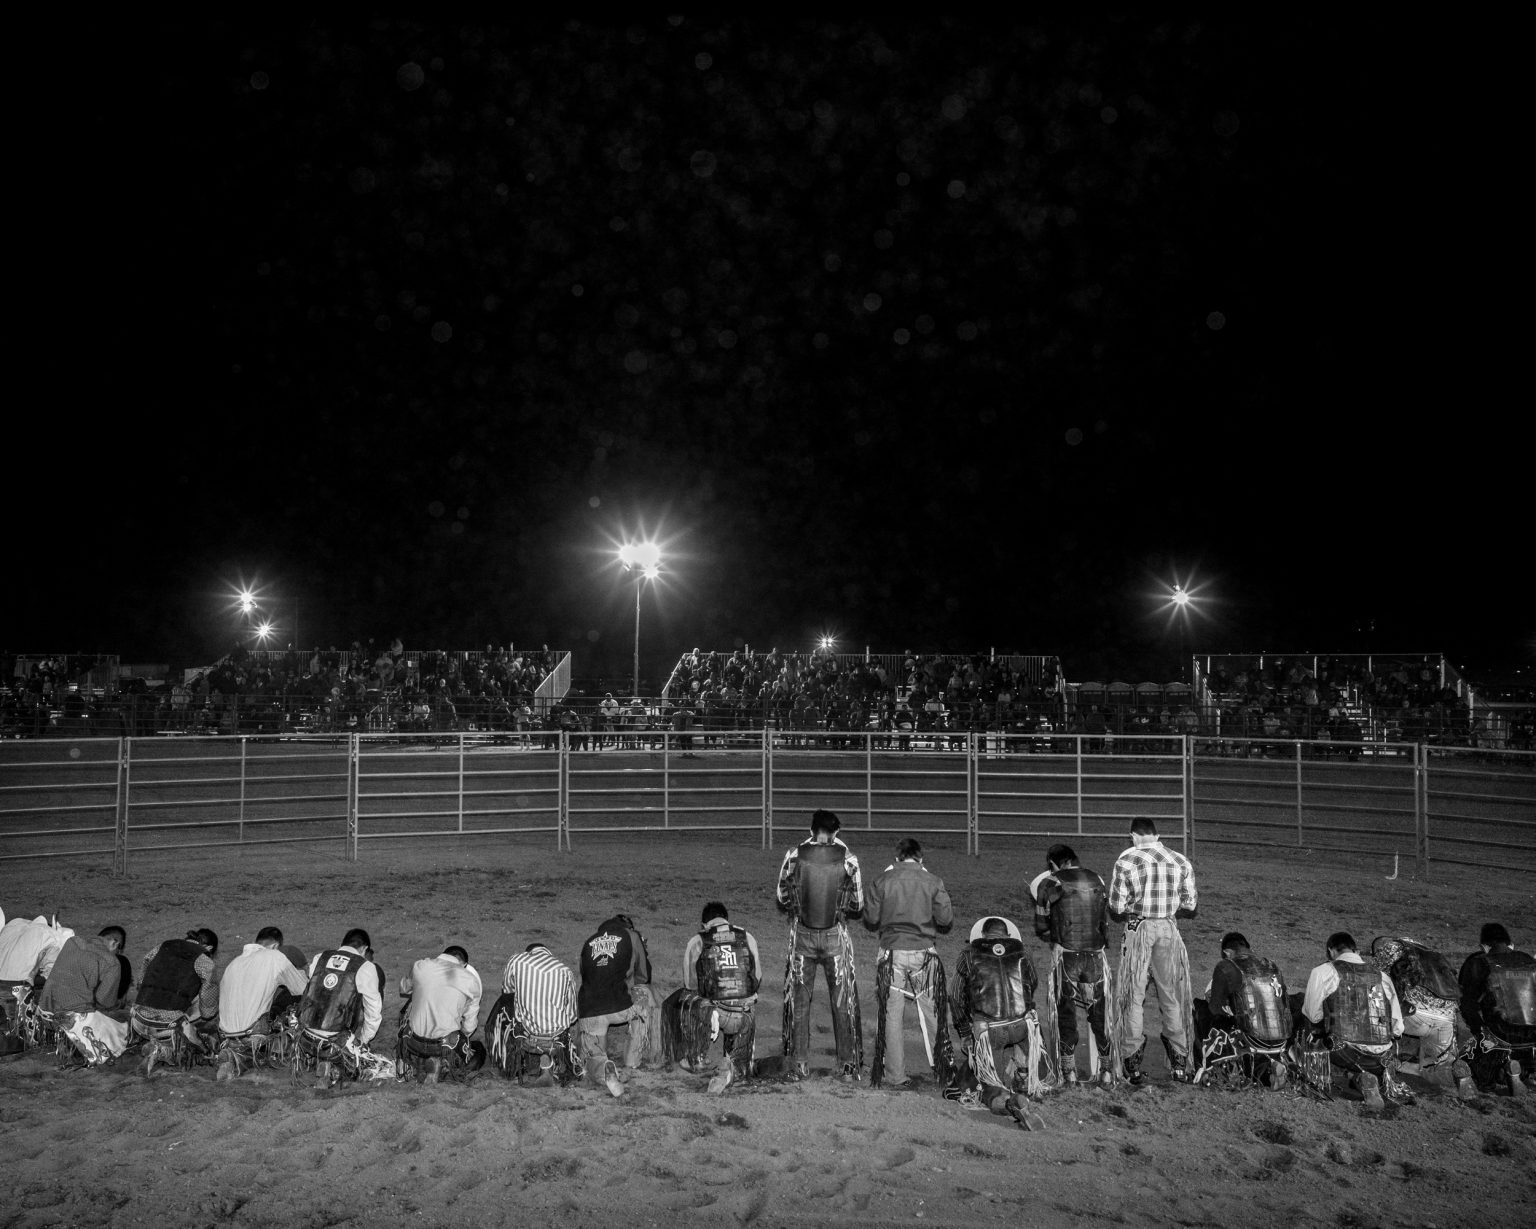 Participants to a rodeo for the 10th anniversary of the Ak-Chin native reservation kneel down as the American himn plays. Maricopa, Arizona.